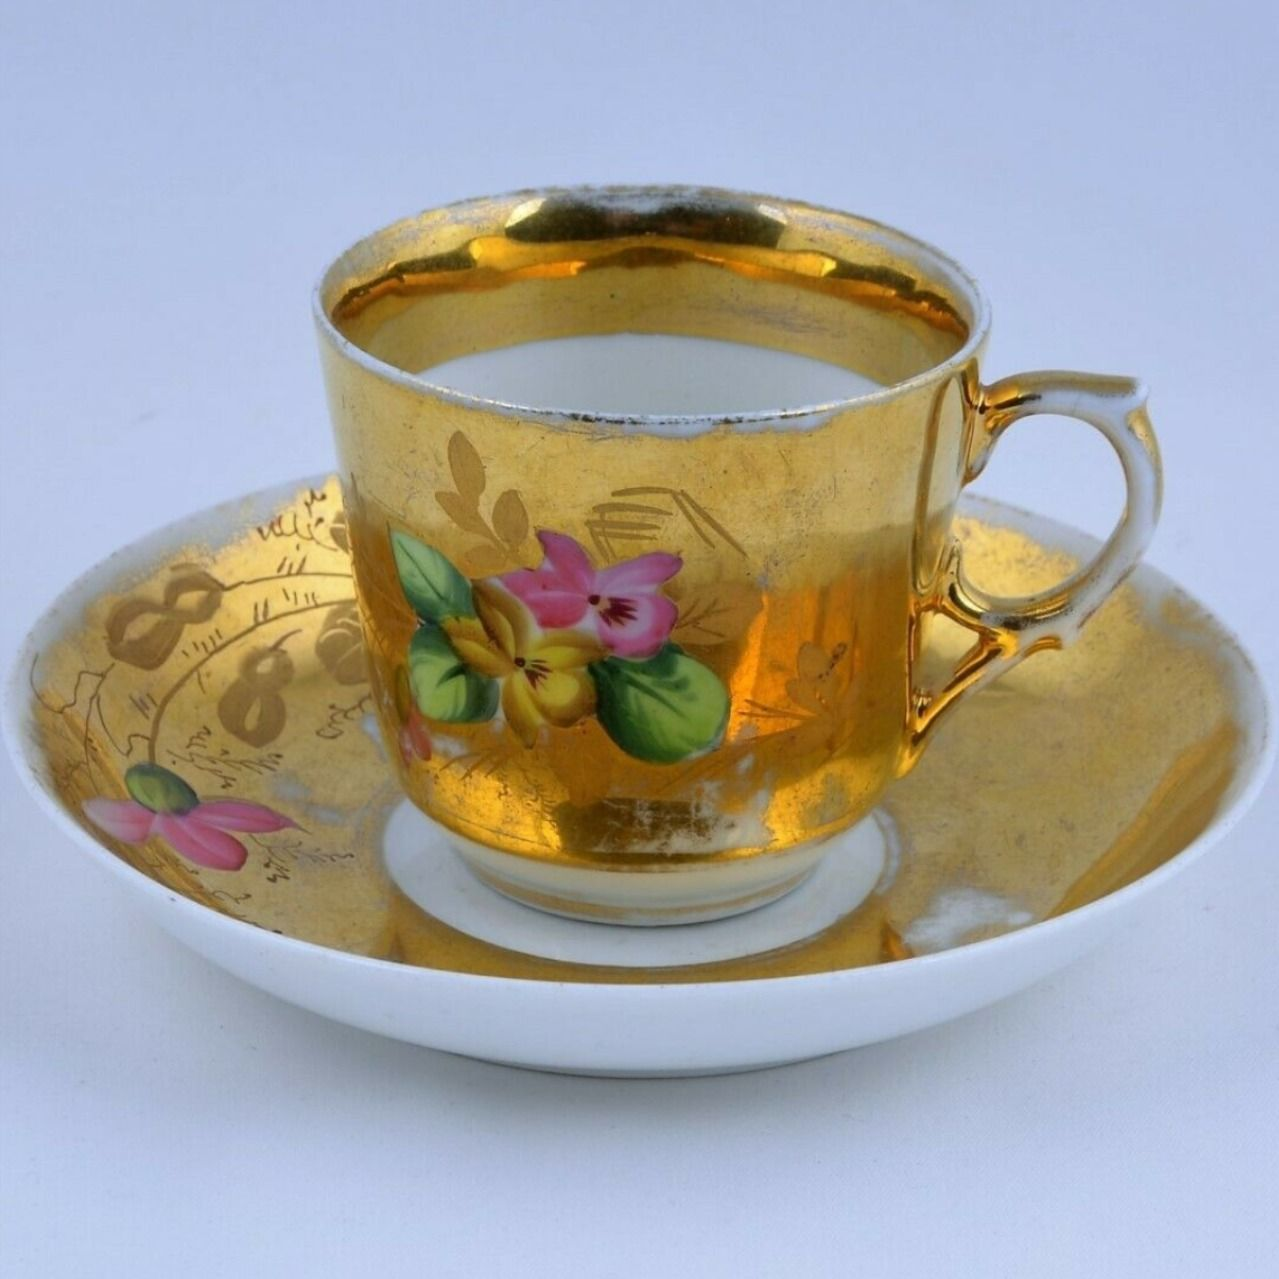 19th Century Antique Russian Kuznetsov Cup and Saucer #diningroomdecor